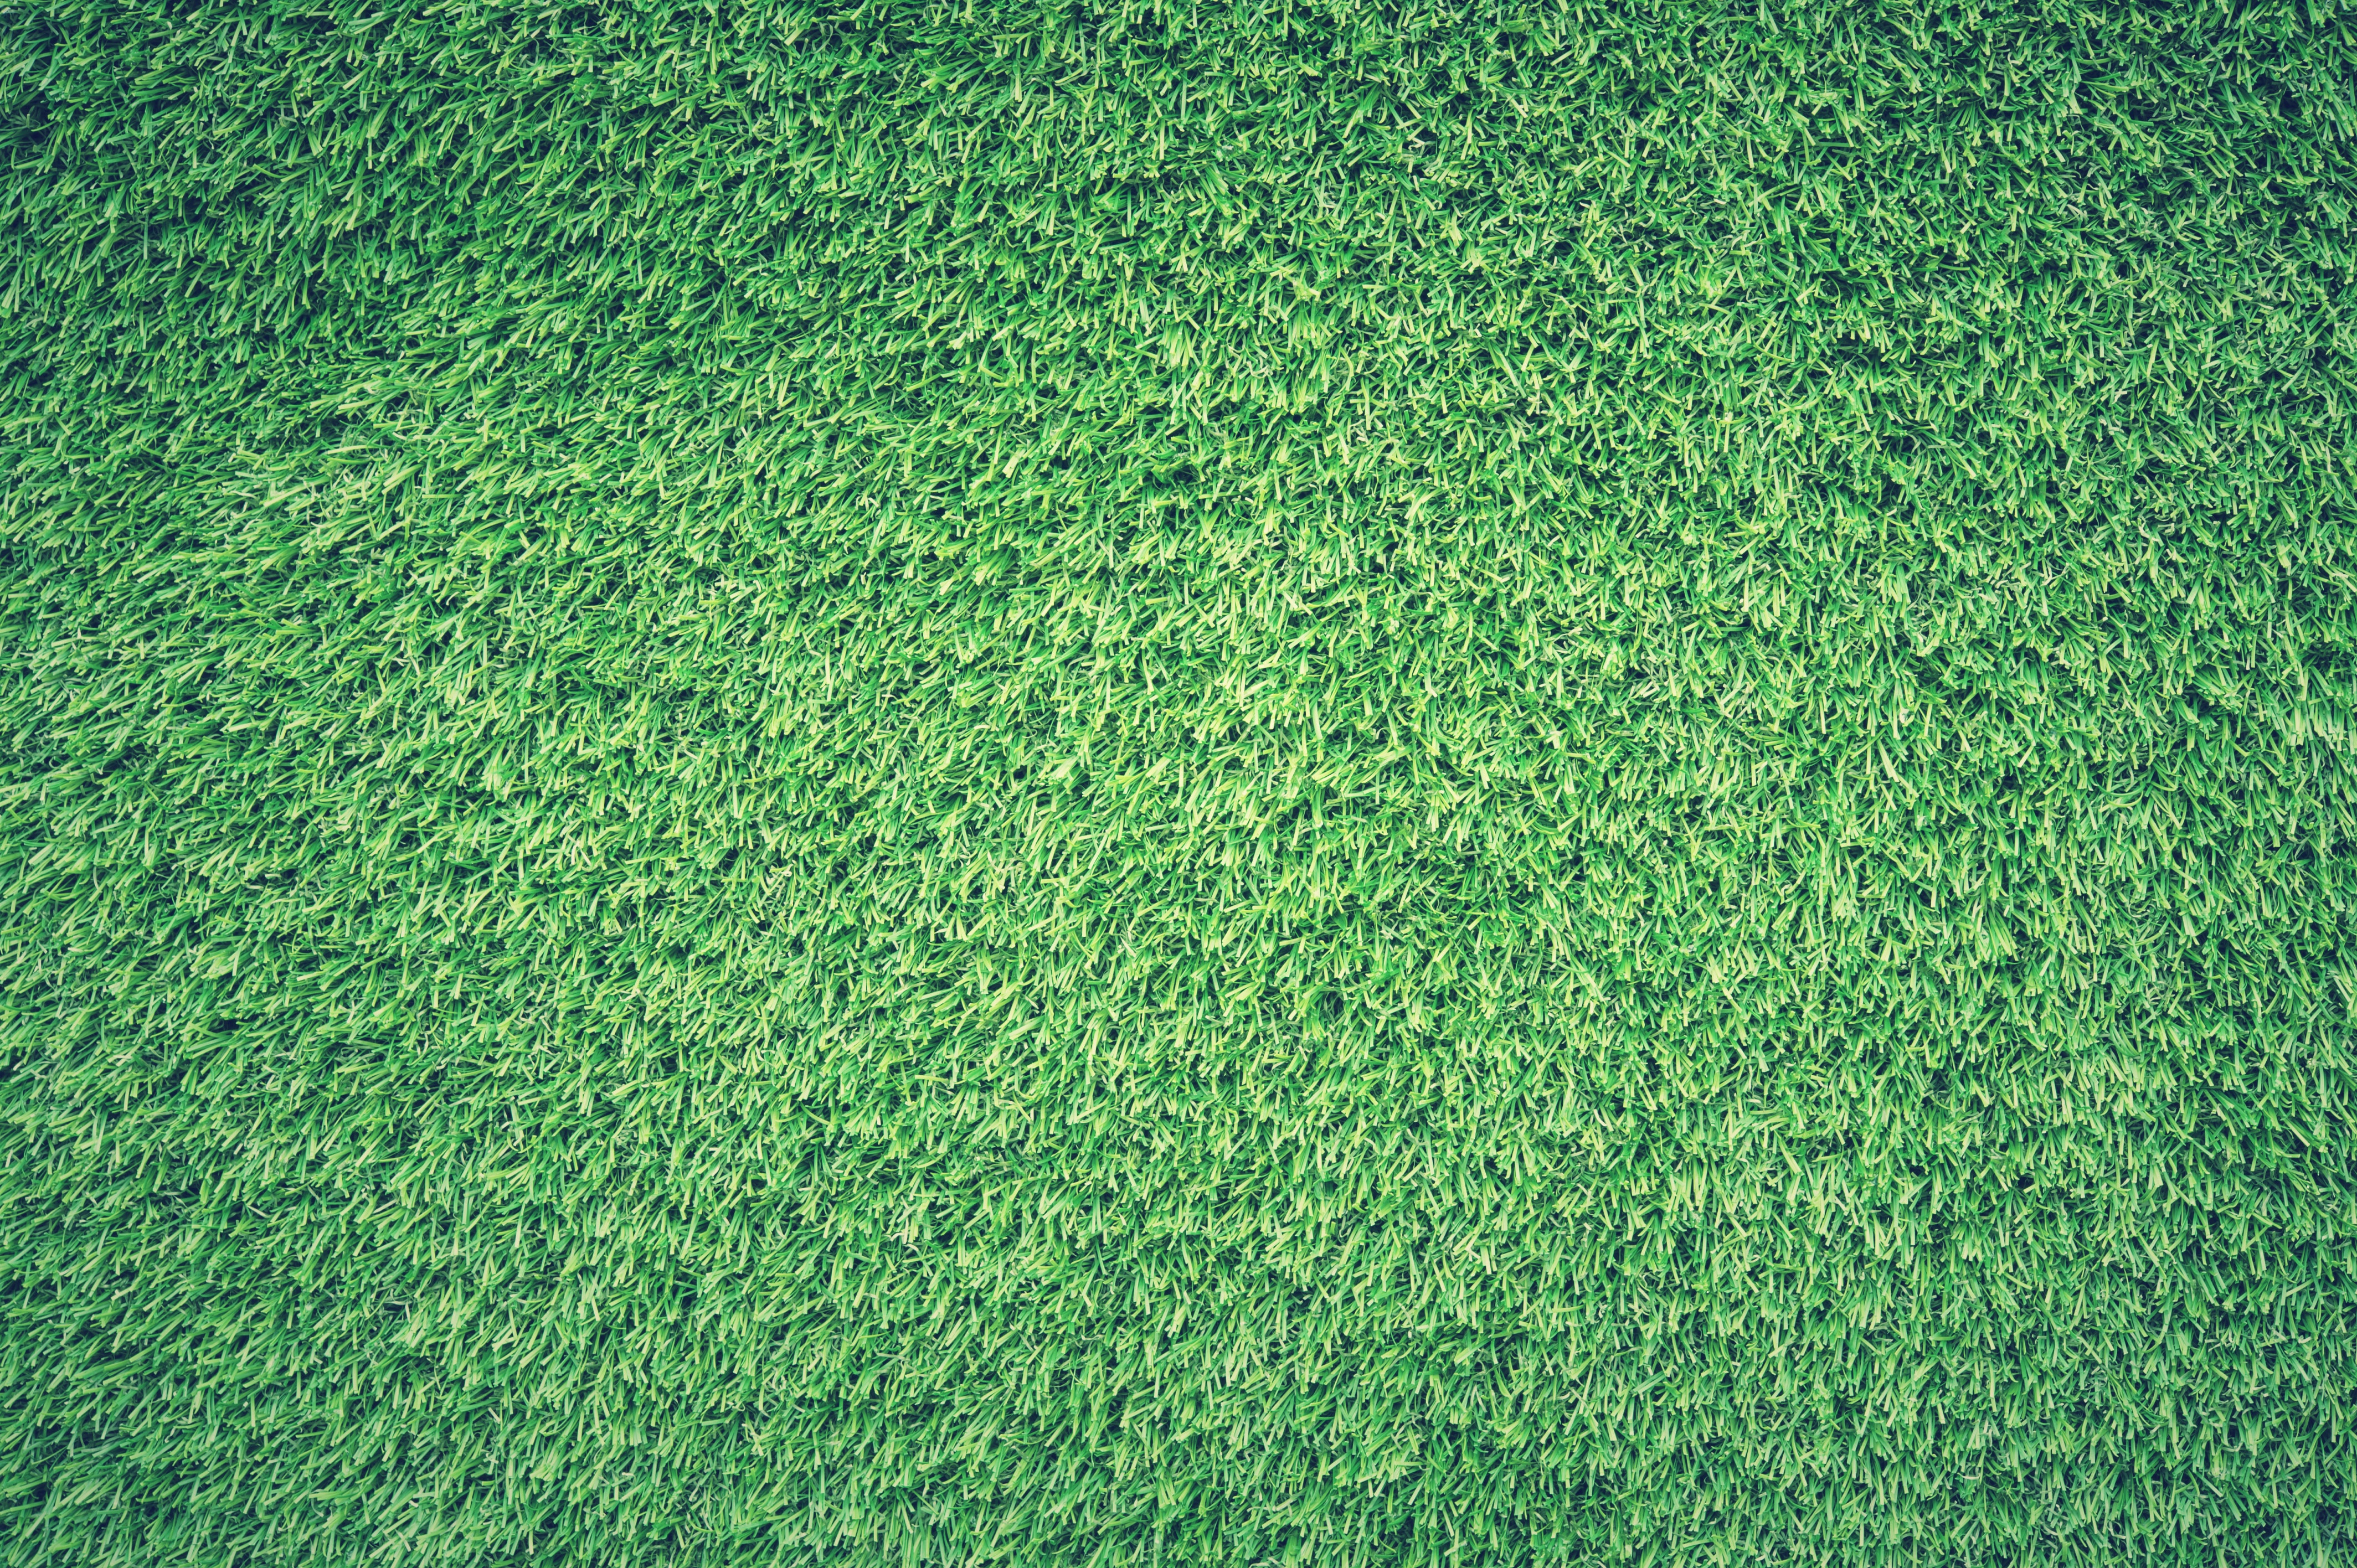 Green Grass Lawn, Texture, Lawn, Green, Grass, HQ Photo